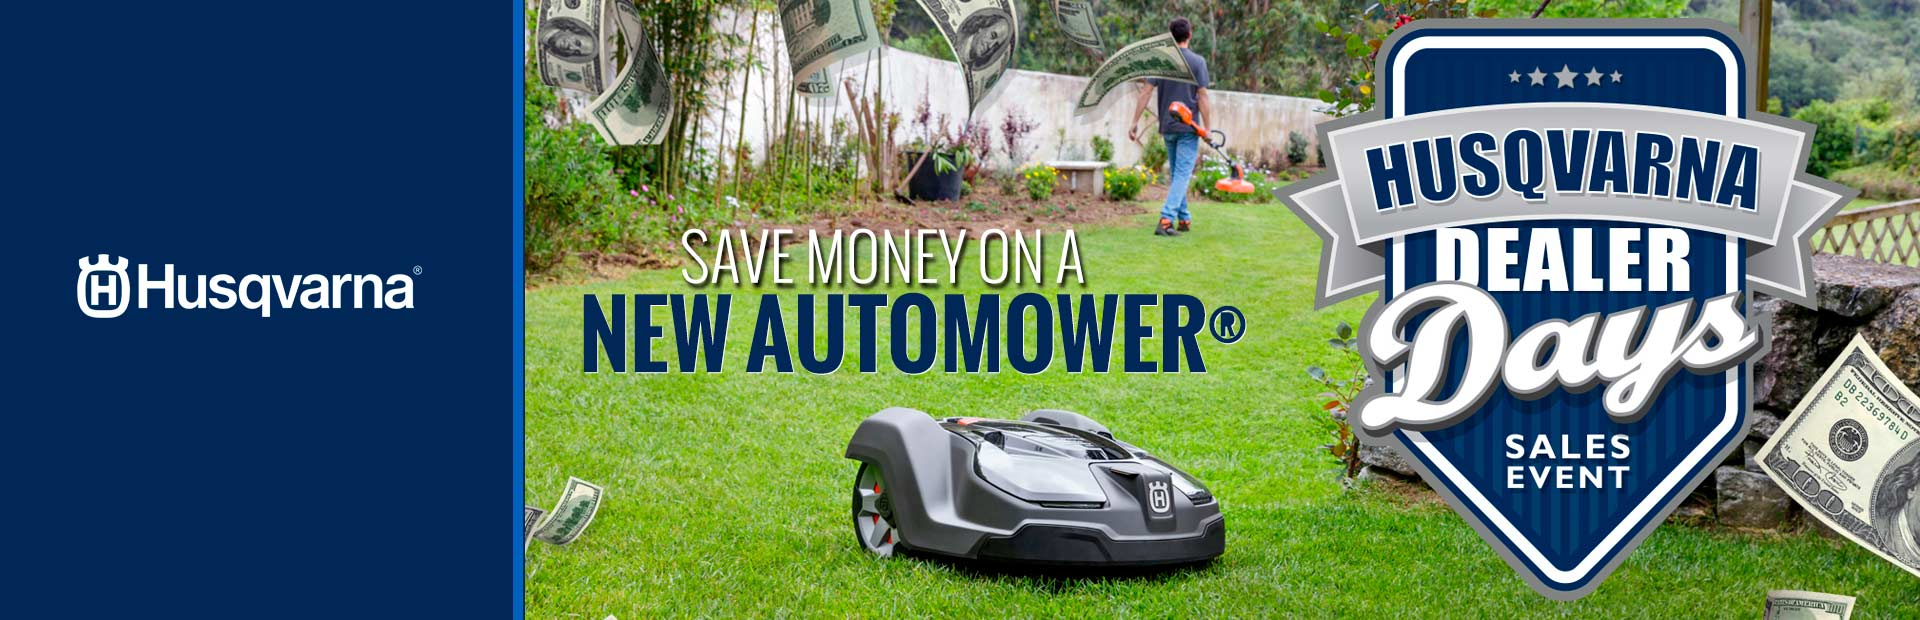 Husqvarna: Save Money on a New Automower®